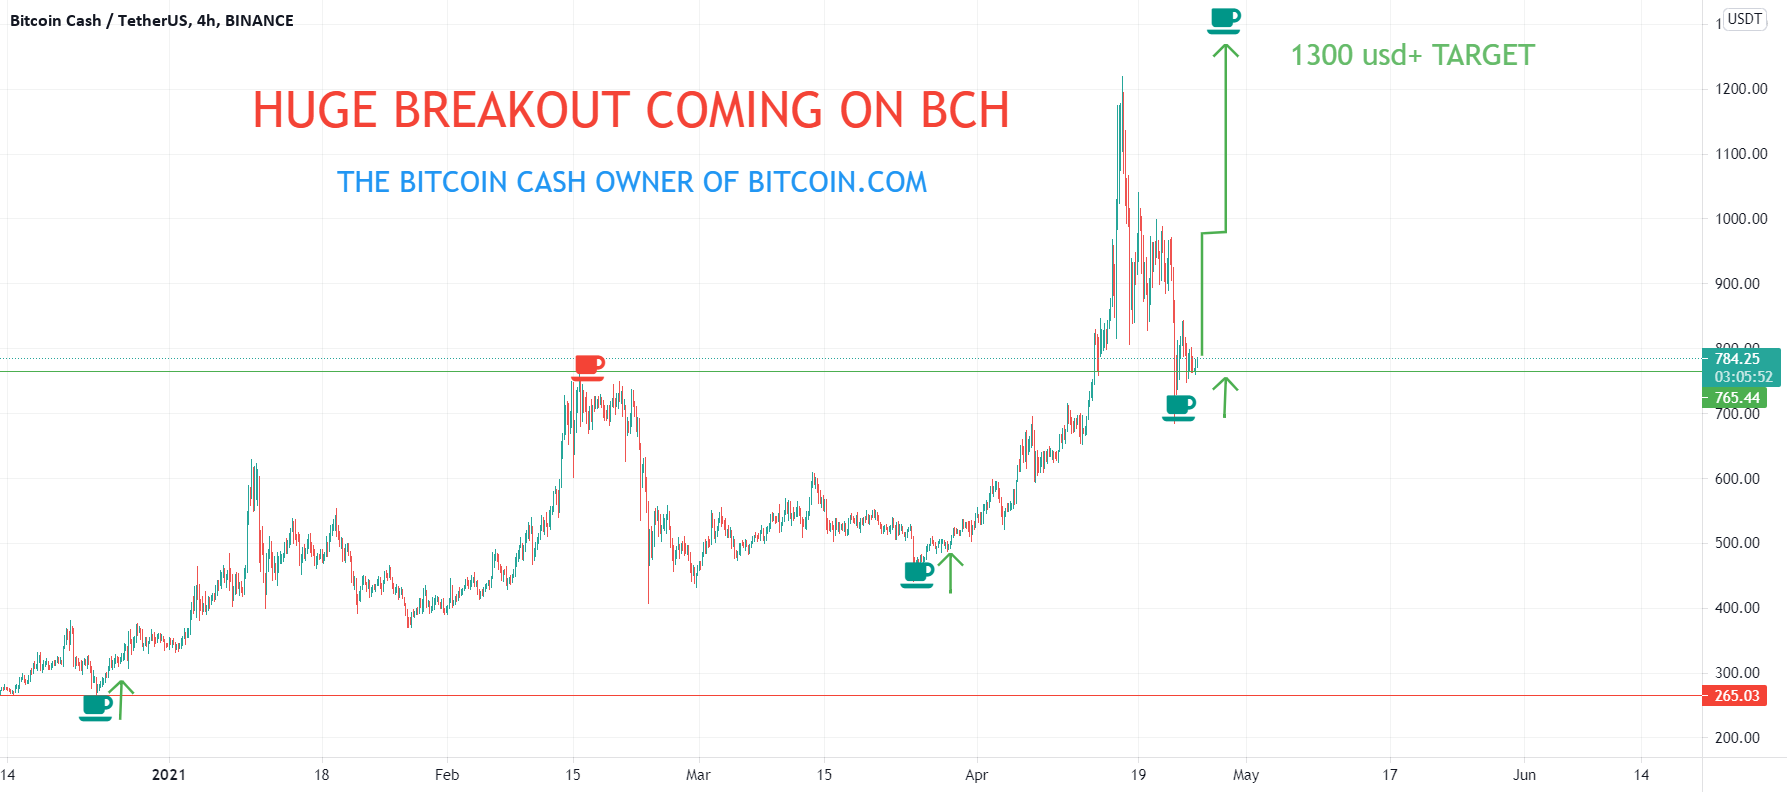 HUGE BREAKOUT FOR BCH COMING TO 1300 usd + THE GOLDEN COIN FOR..